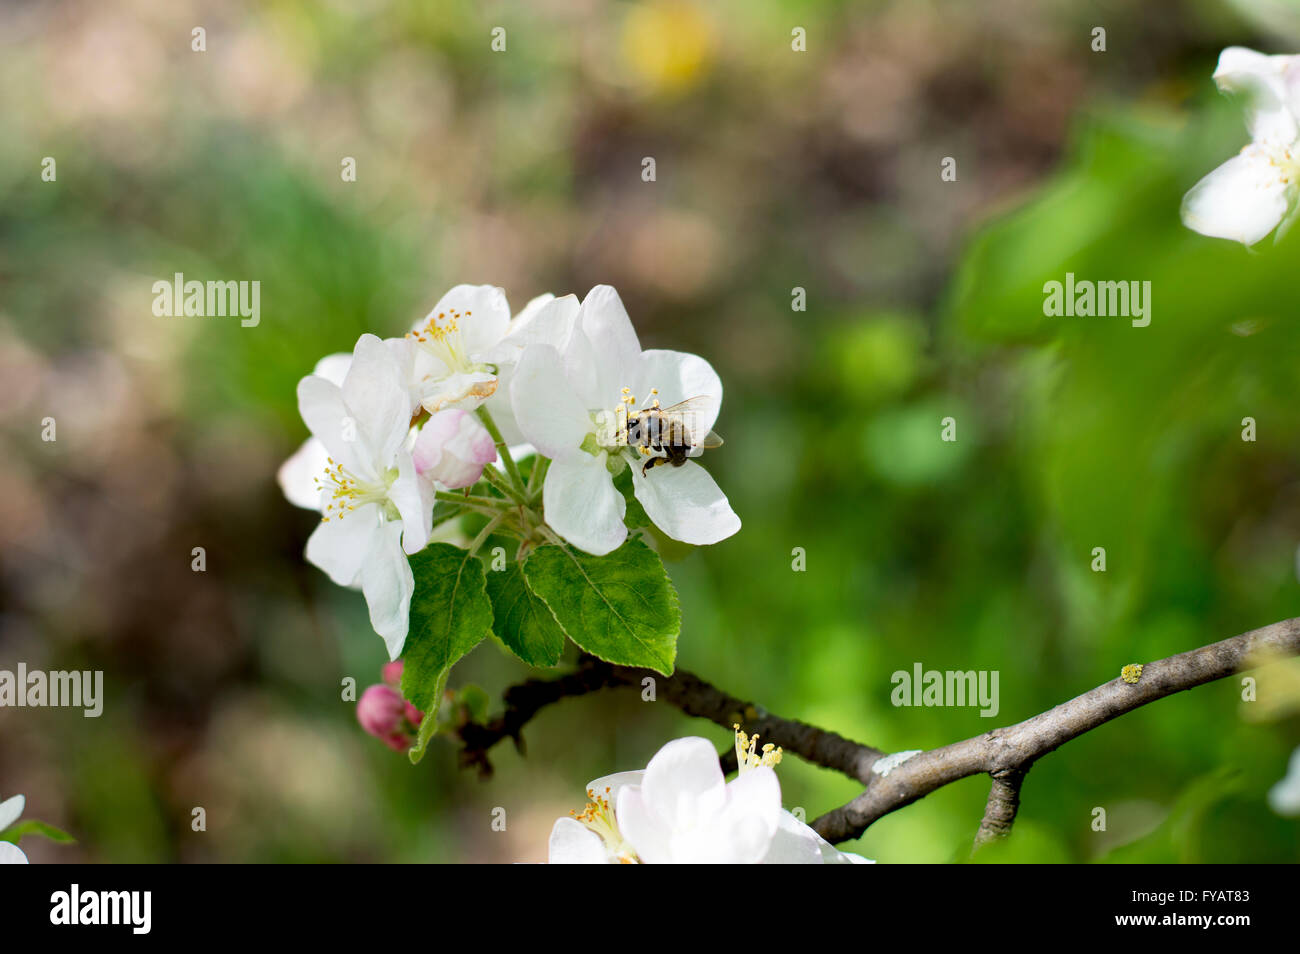 the bee collects nectar on flowers of an apple-tree - Stock Image